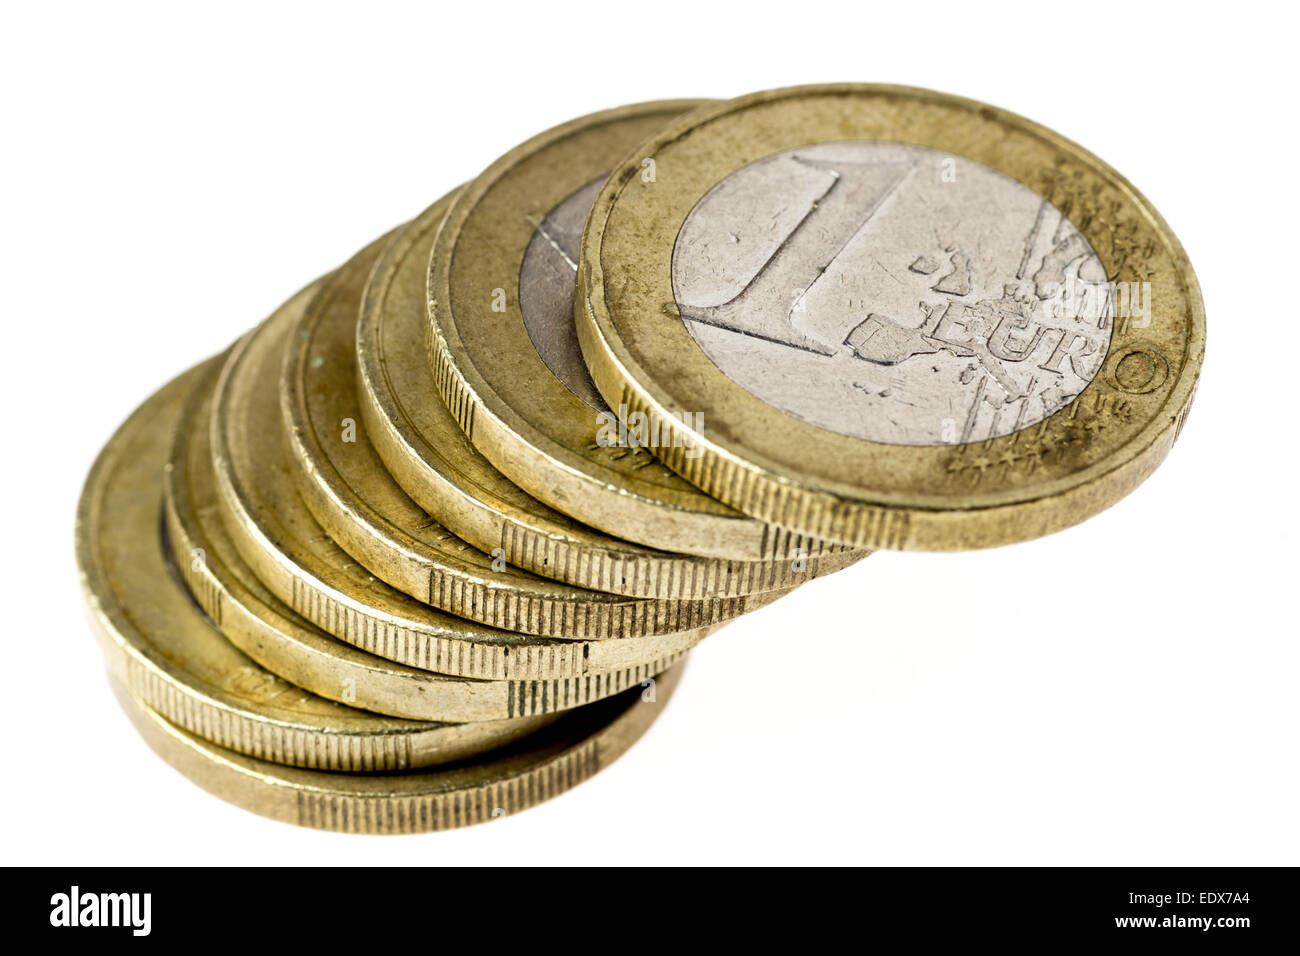 Pile of one Euro coins precariously balanced and about to collapse - Stock Image